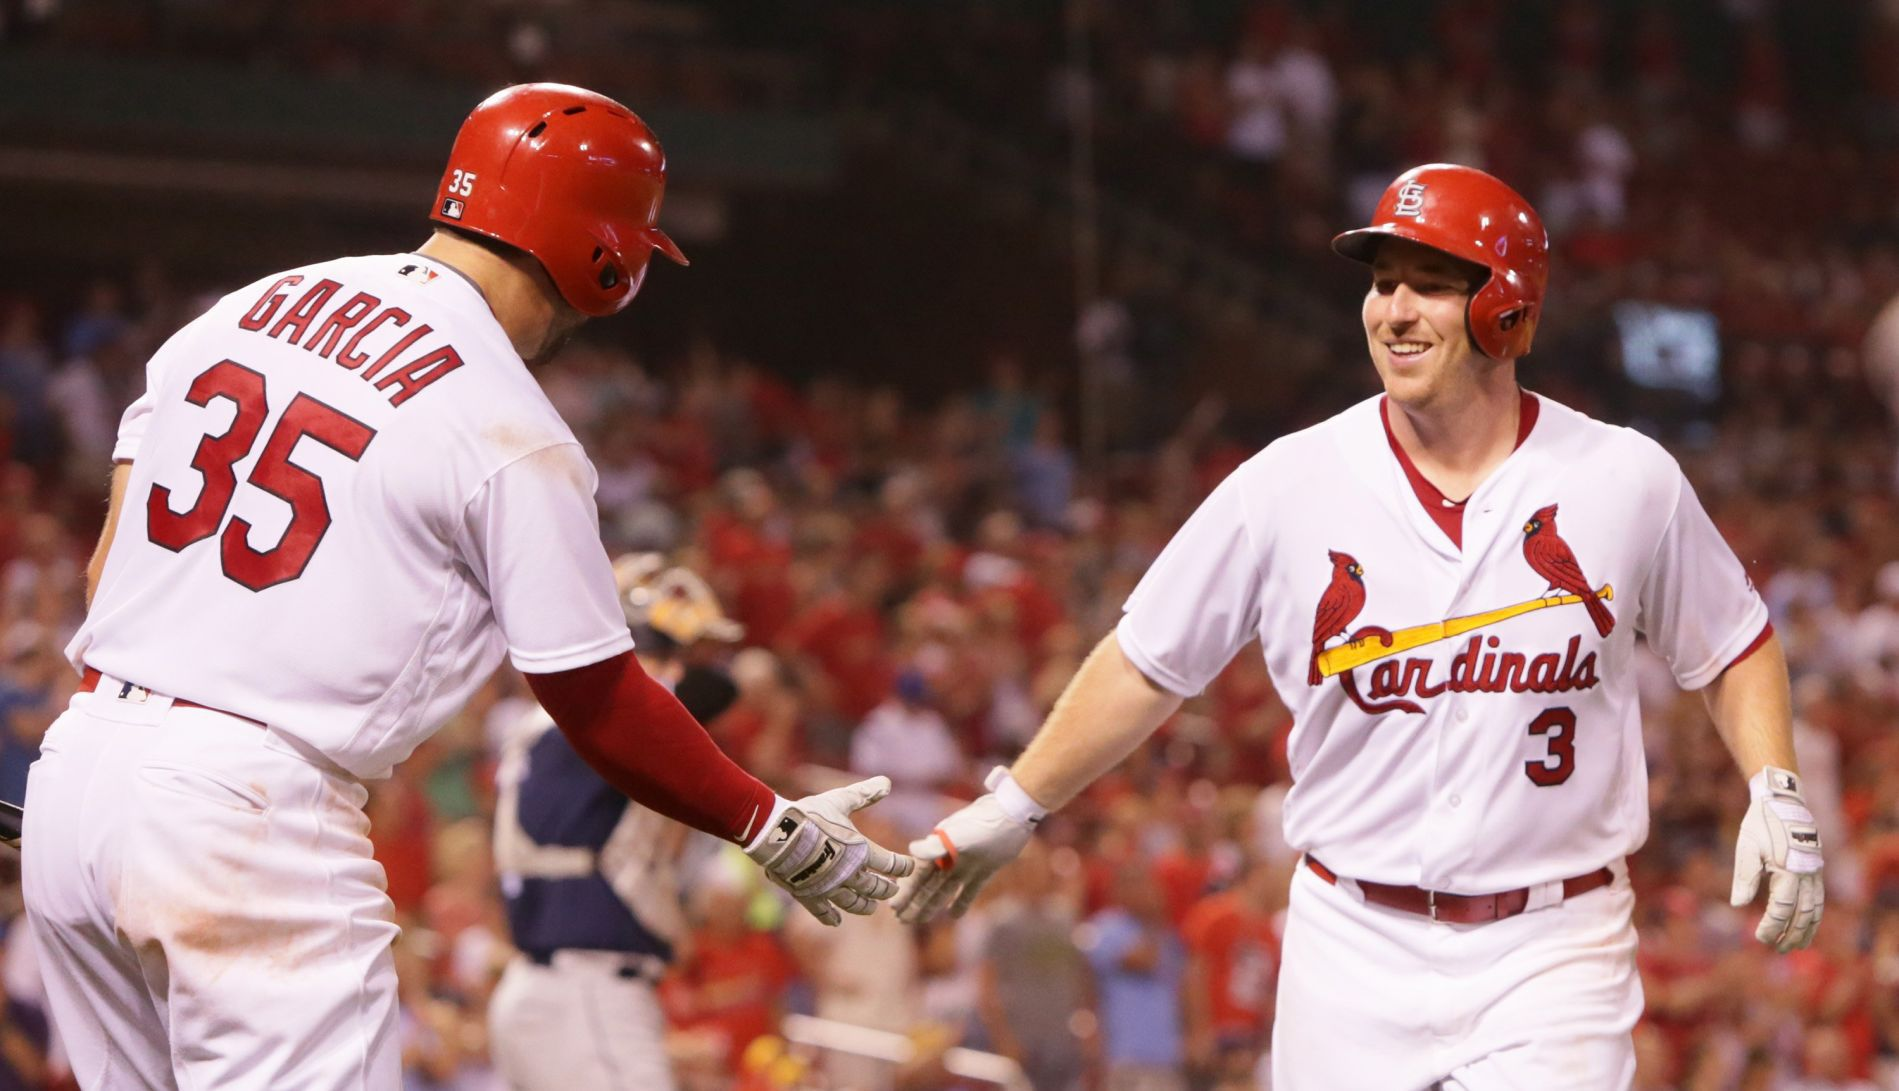 While injured Jay watches, Cards' Gyorko feasts on former team